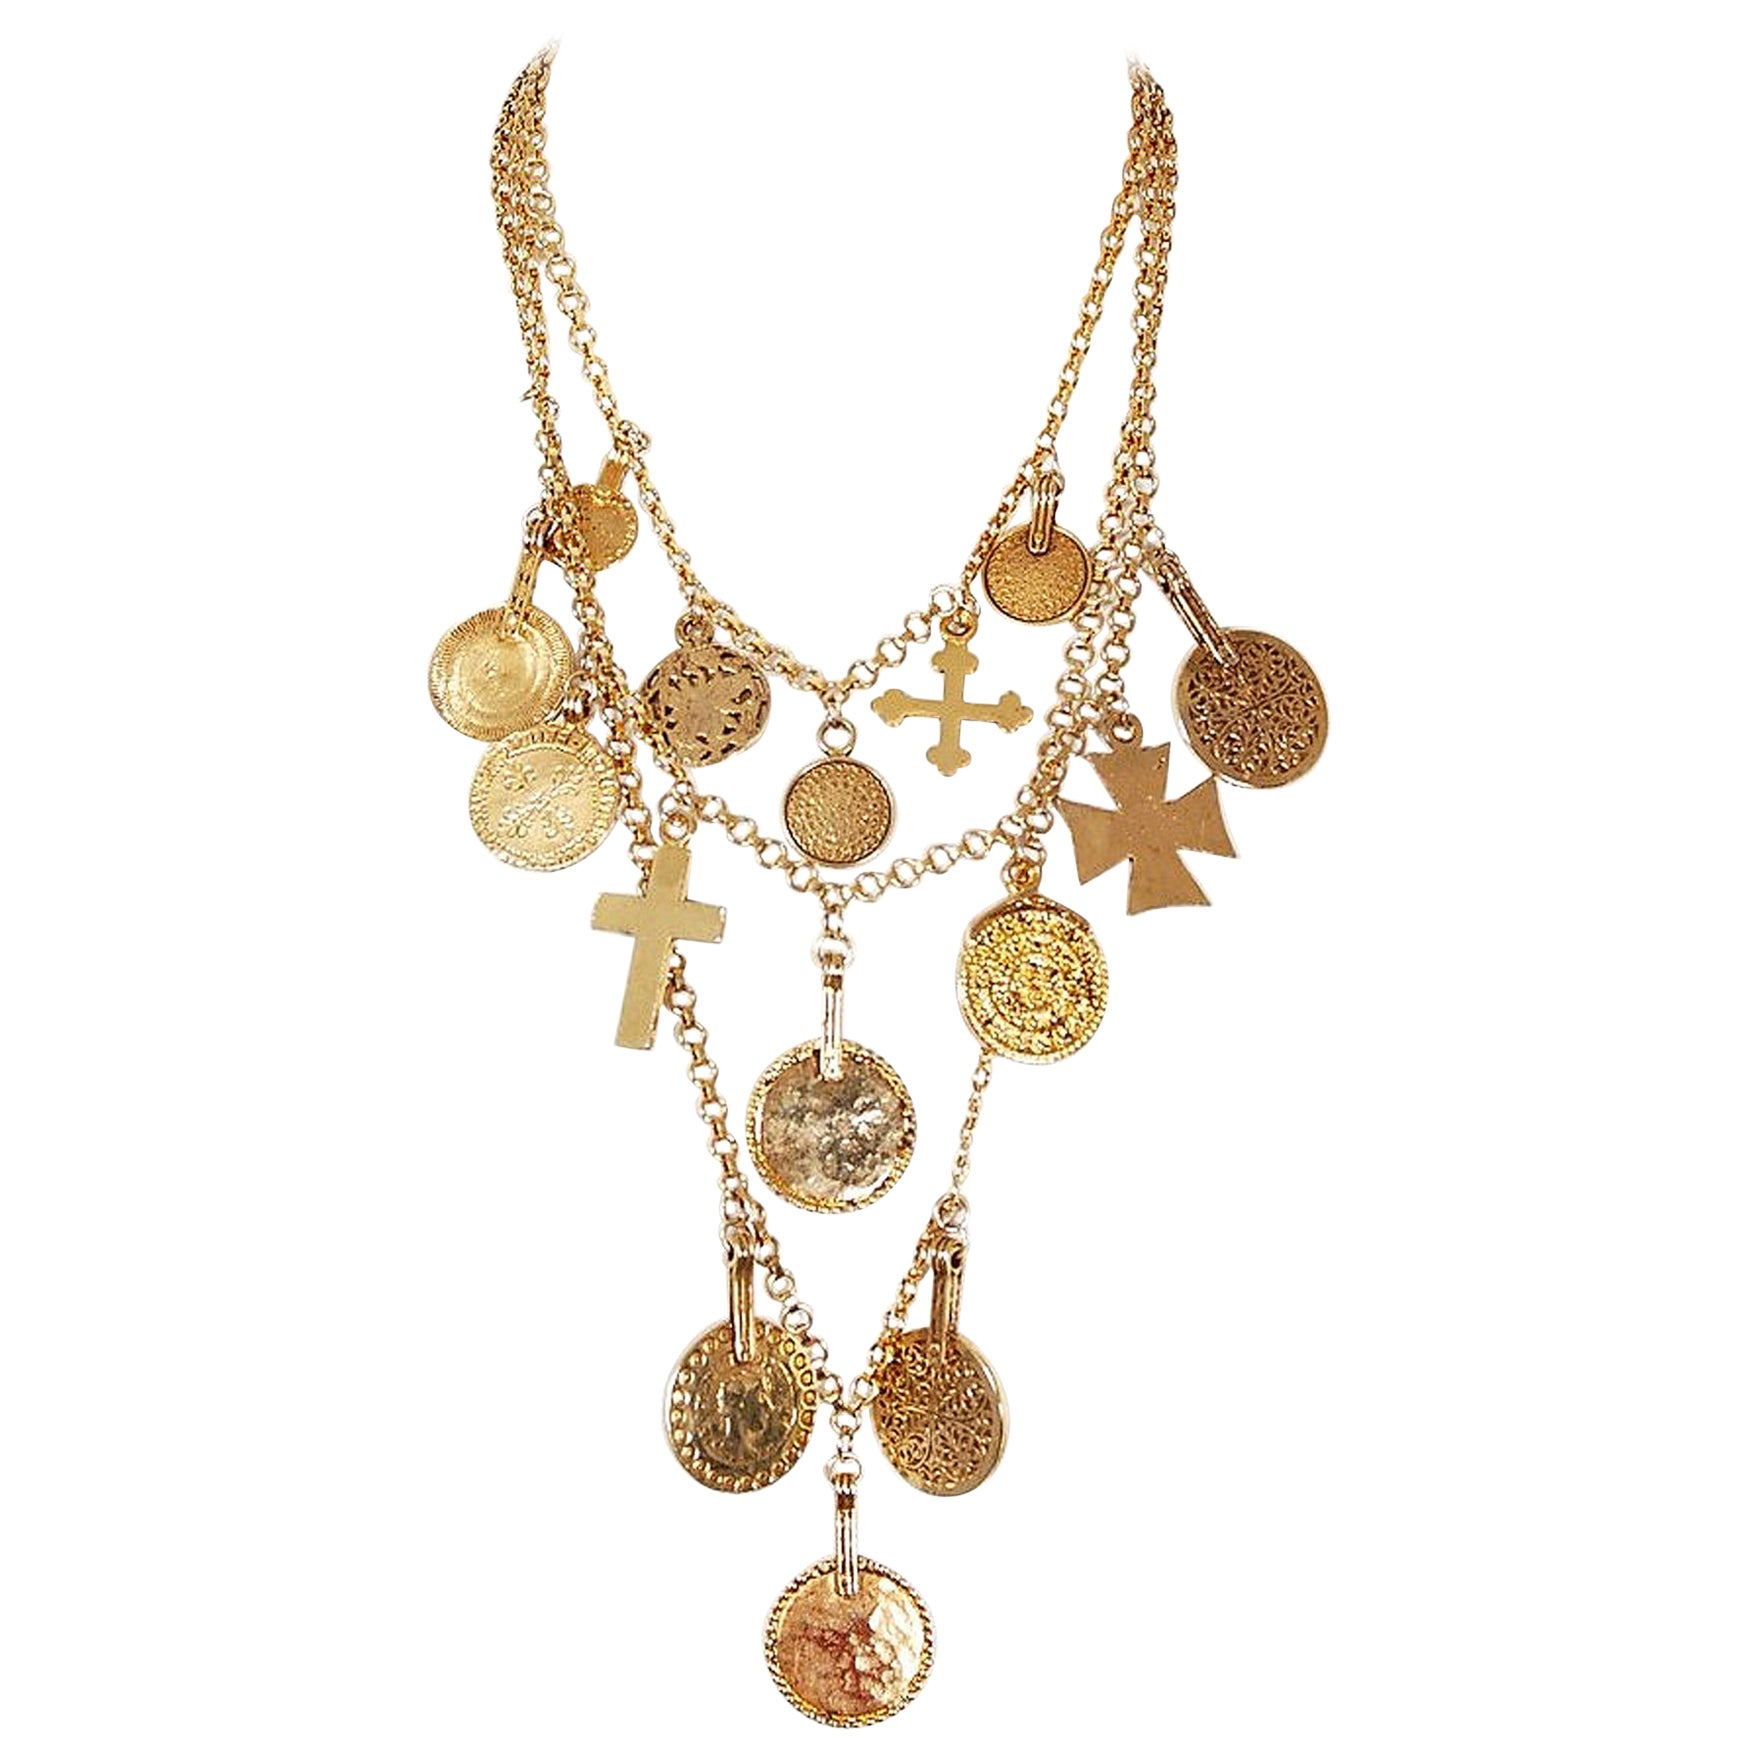 e3c7df9e94d 1977 Yves Saint Laurent Gypsy Gold Coin and Cross Medallion Charm Layered  Necklace at 1stdibs